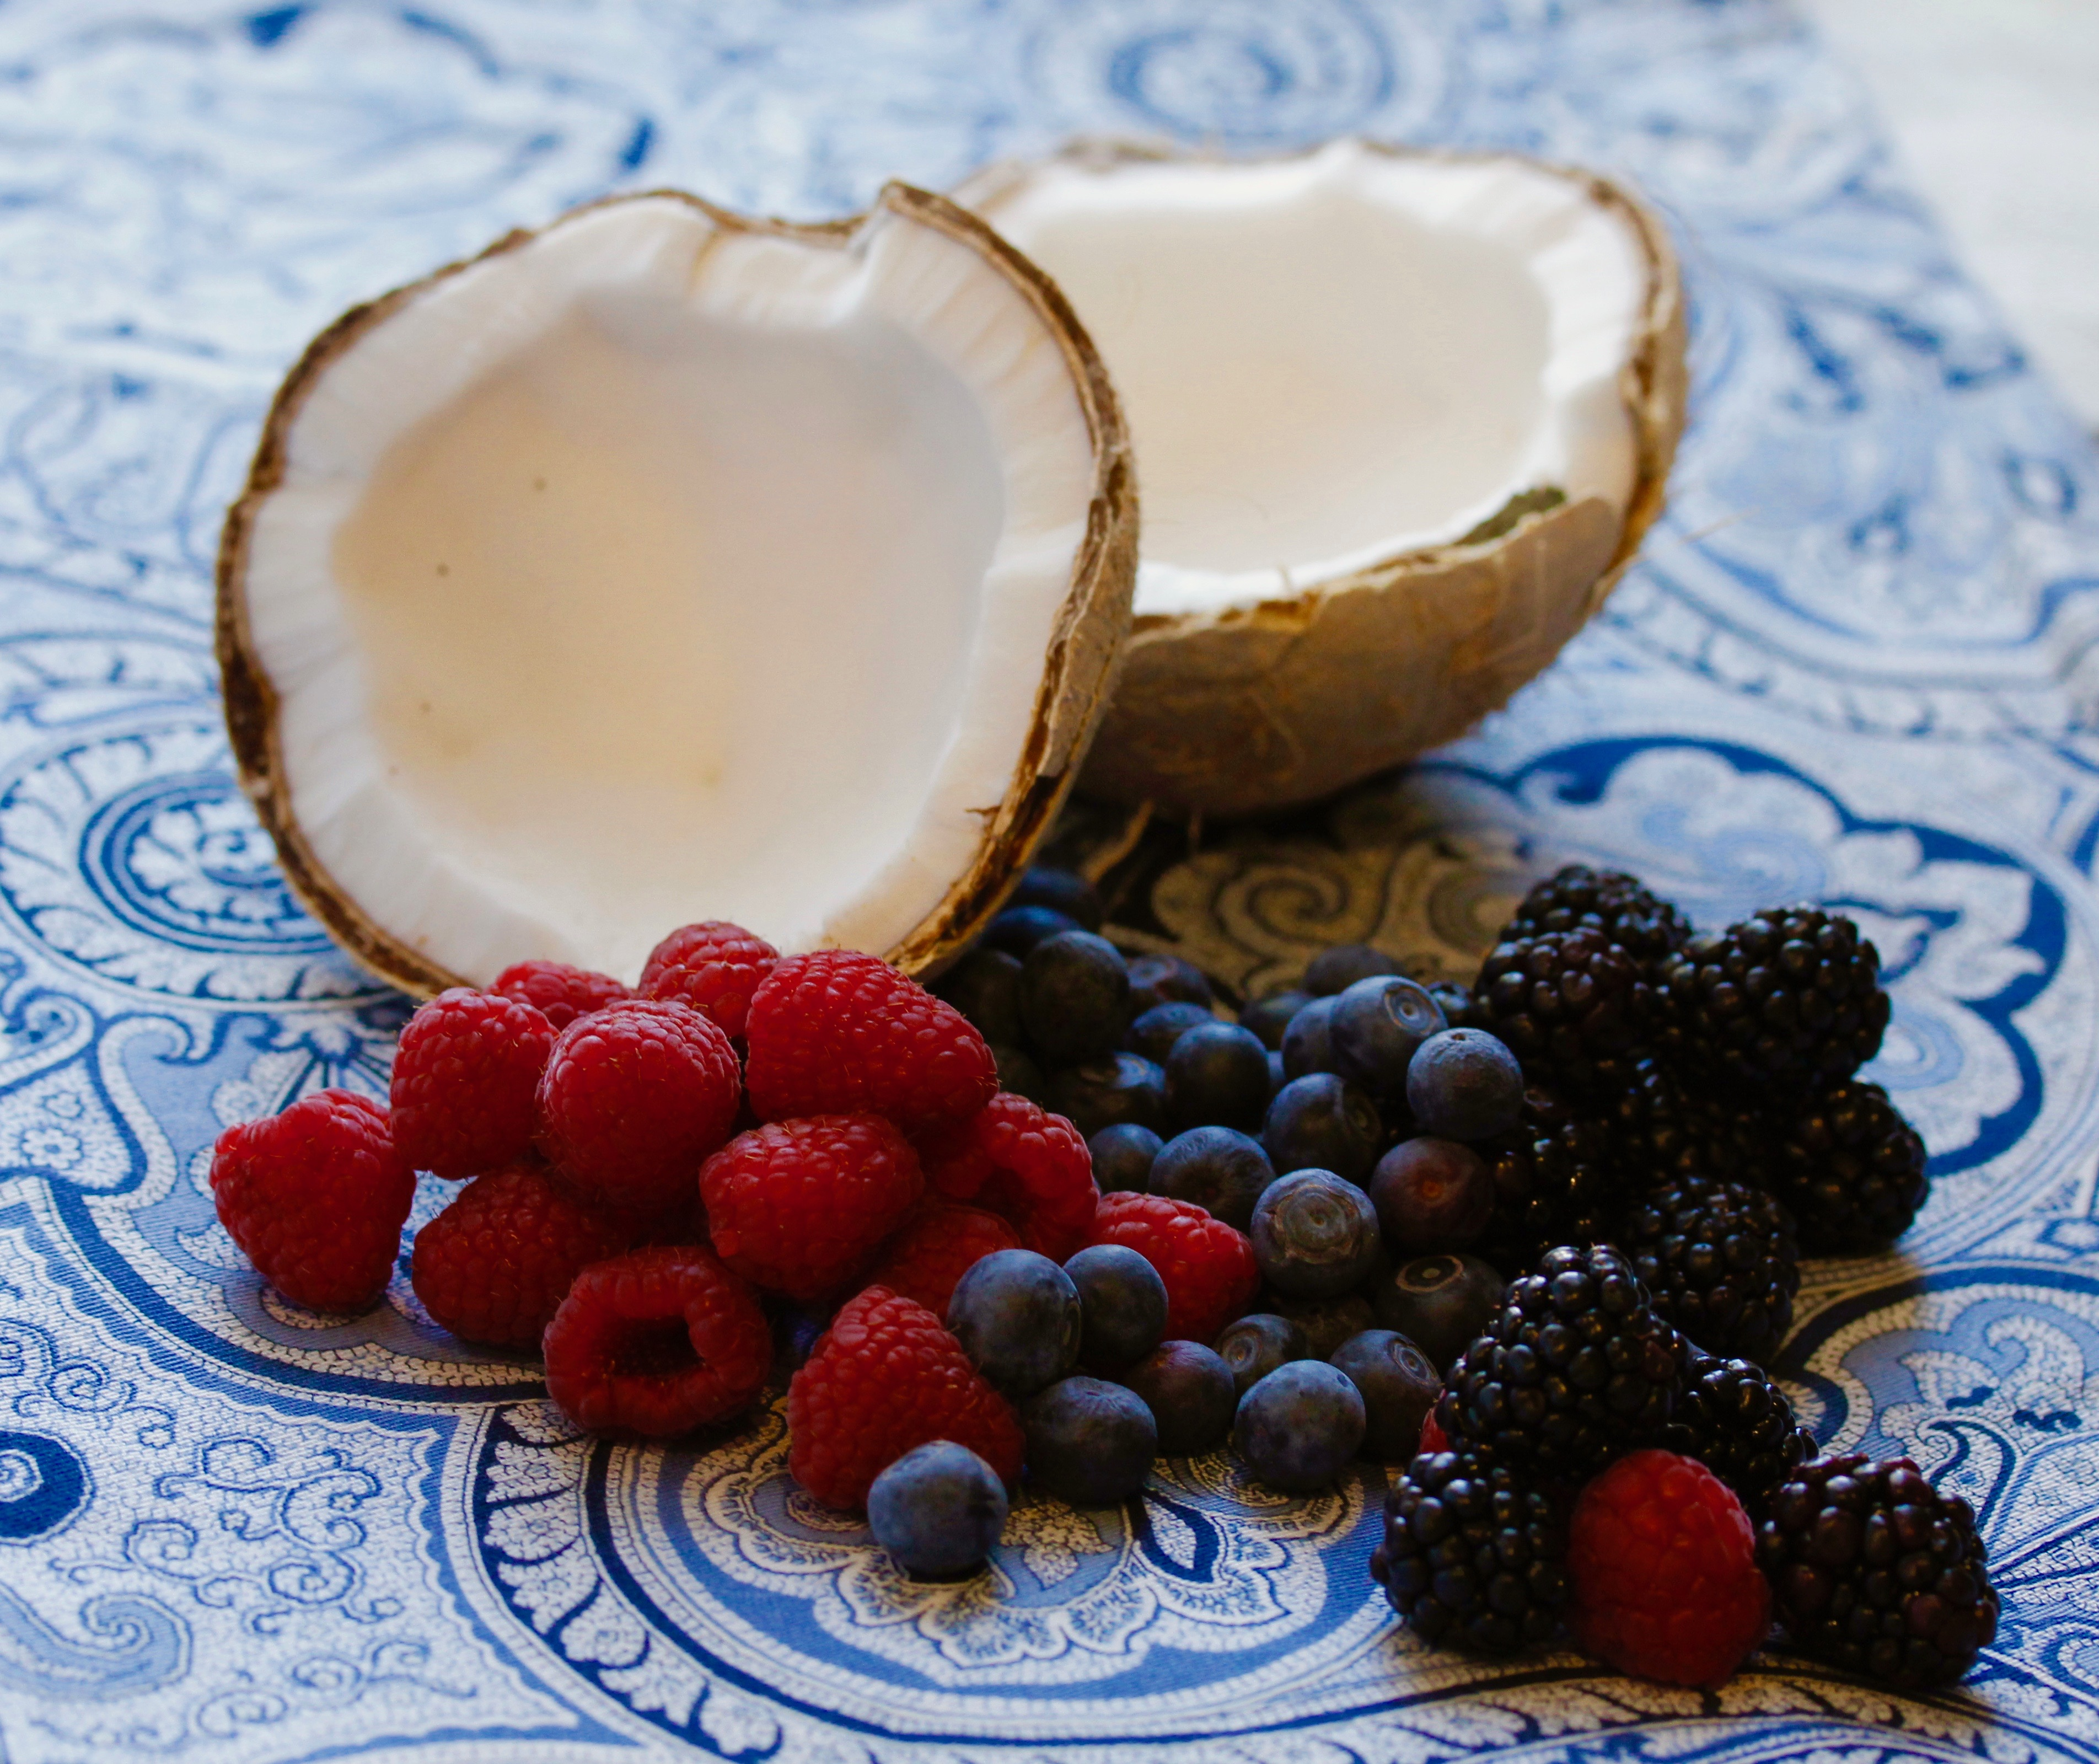 coconuts and berries